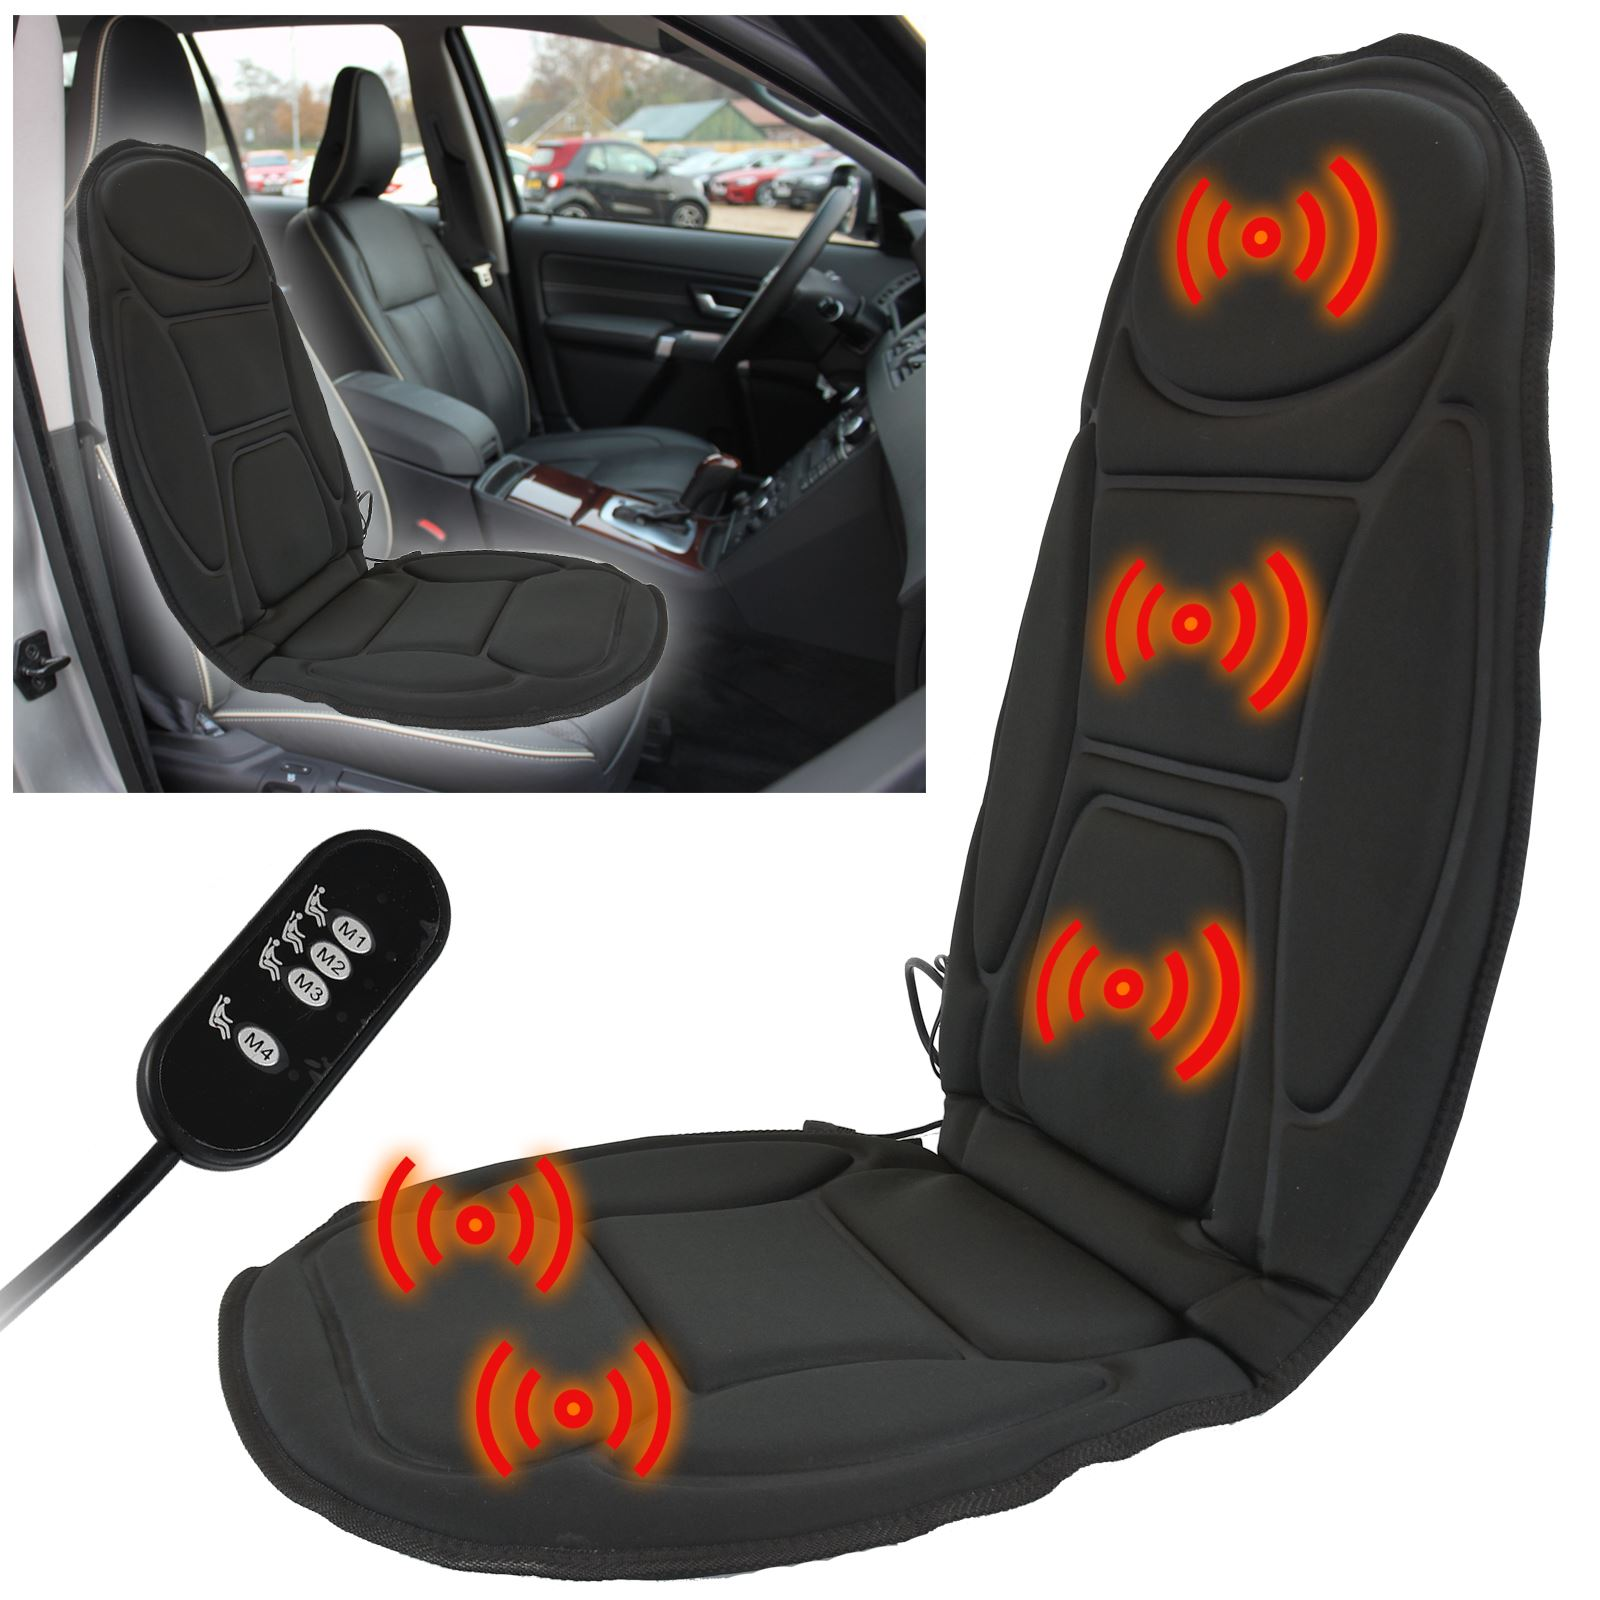 Chair Back Massager Massage Car Seat Cover Chair Back Massager Vibrate Cushion